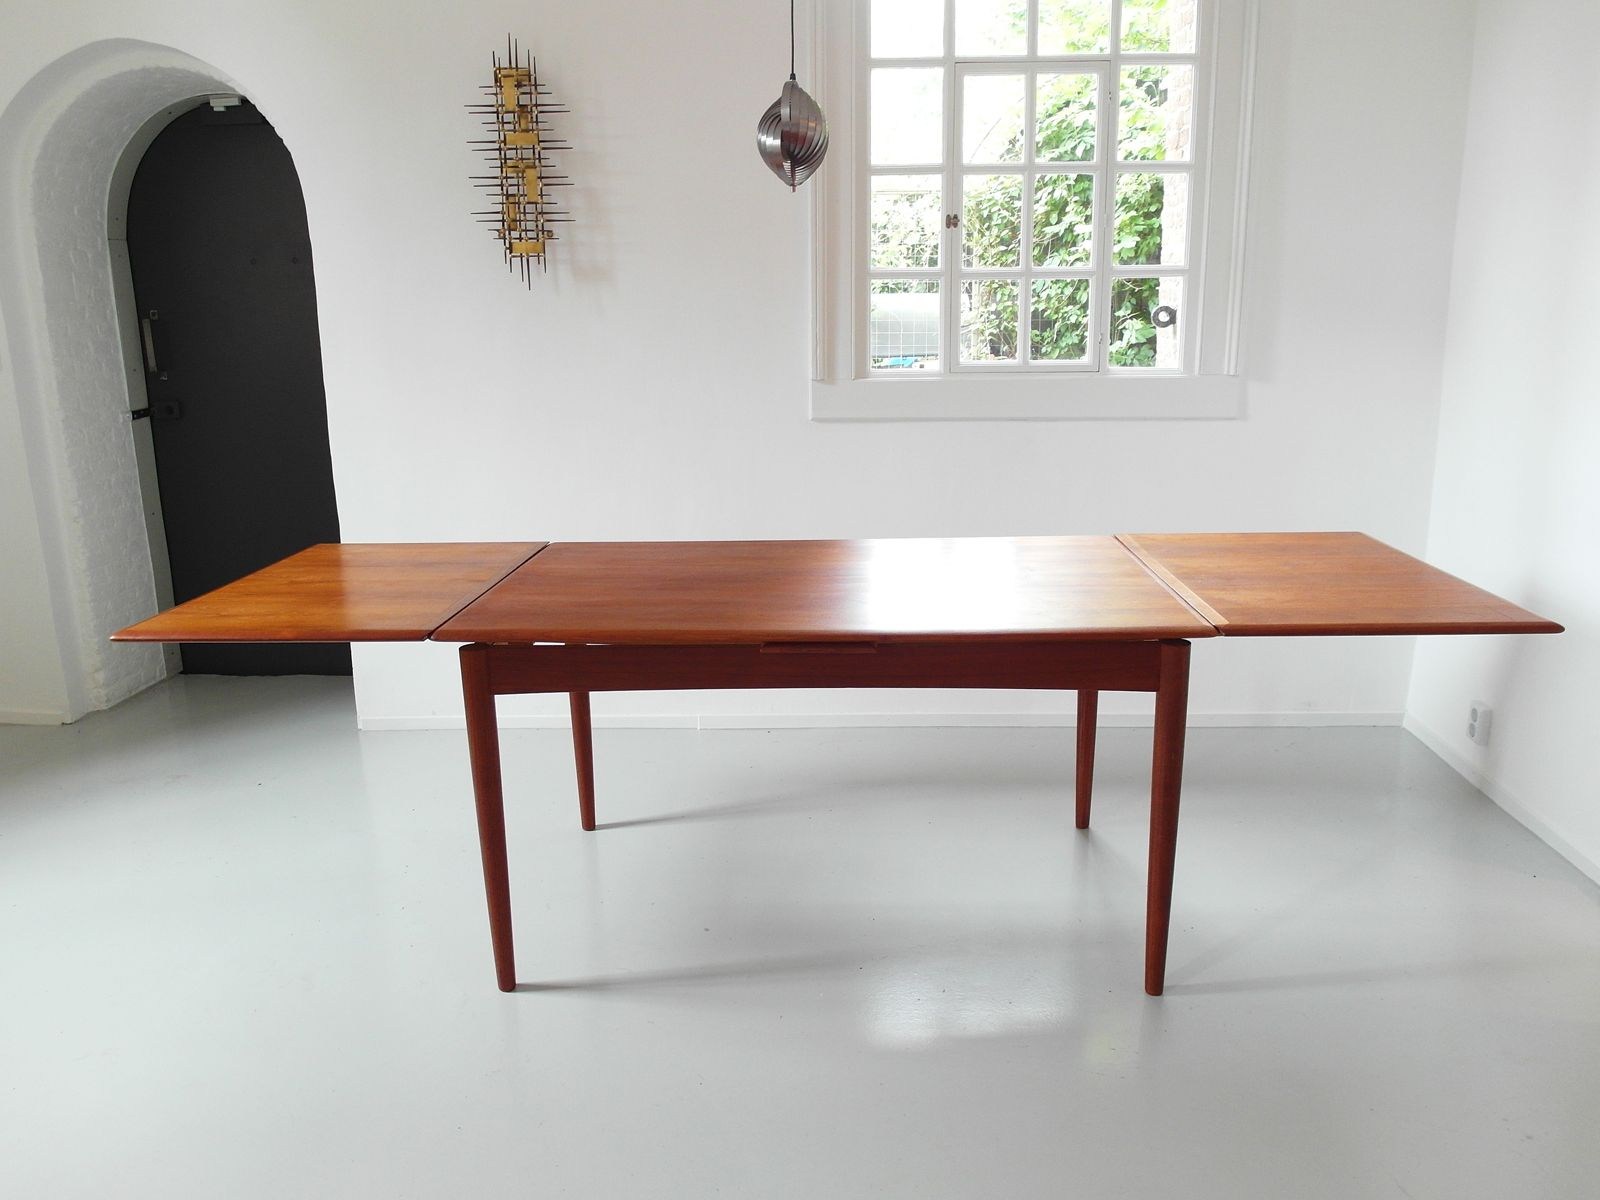 Danish Teak Dining Table from Dyrlund 1960s for sale at  : danish teak dining table from dyrlund 1960s 2 from www.pamono.com.au size 1600 x 1200 jpeg 918kB